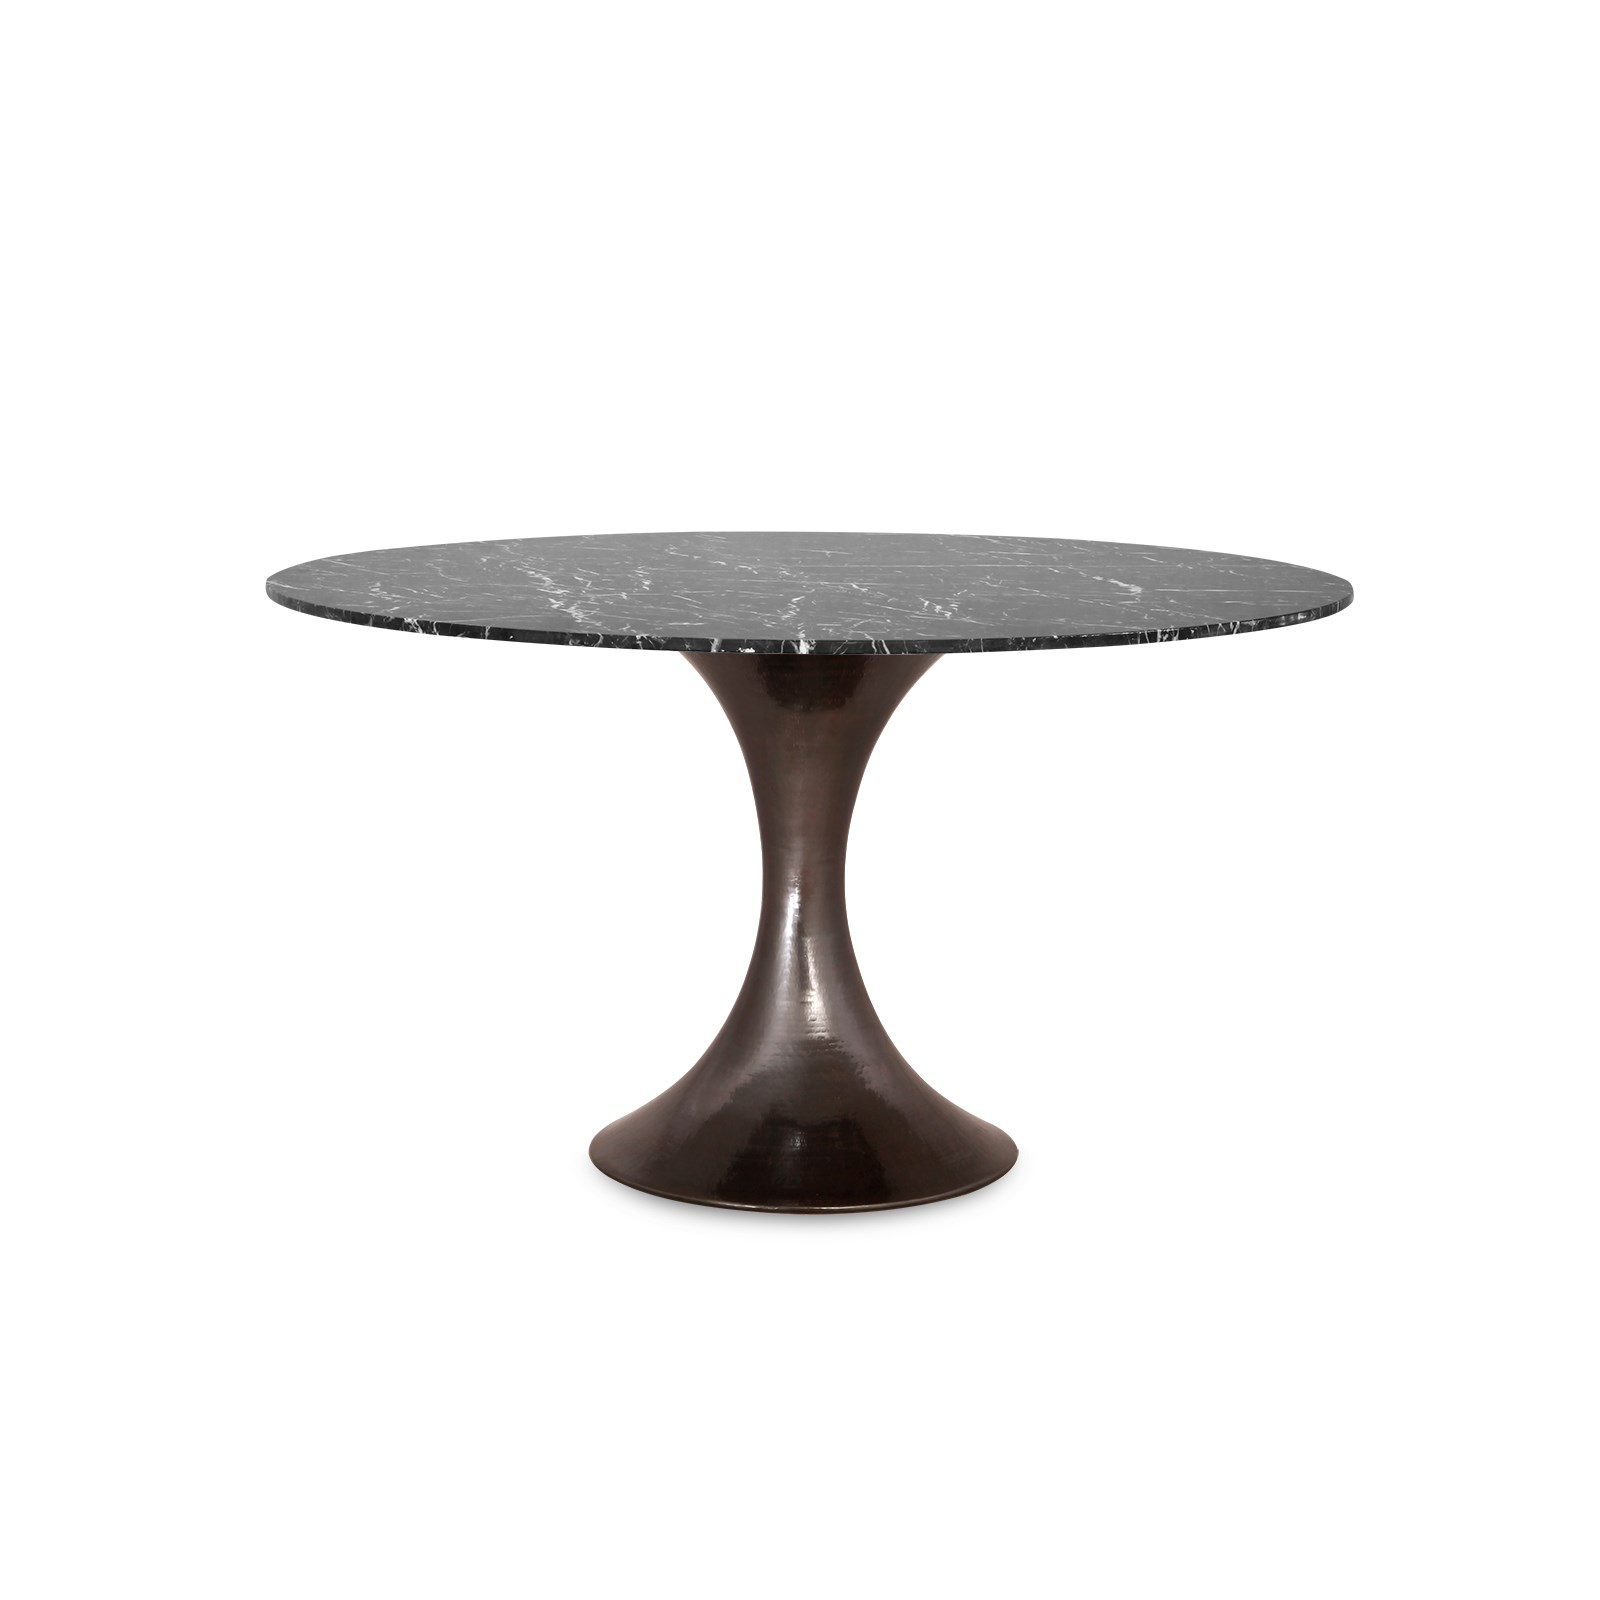 Stockholm Bronze Dining Table Base Pairs with 52quot amp 60  : STO 375 804 B6lg from www.bungalow5.com size 1600 x 1600 jpeg 83kB